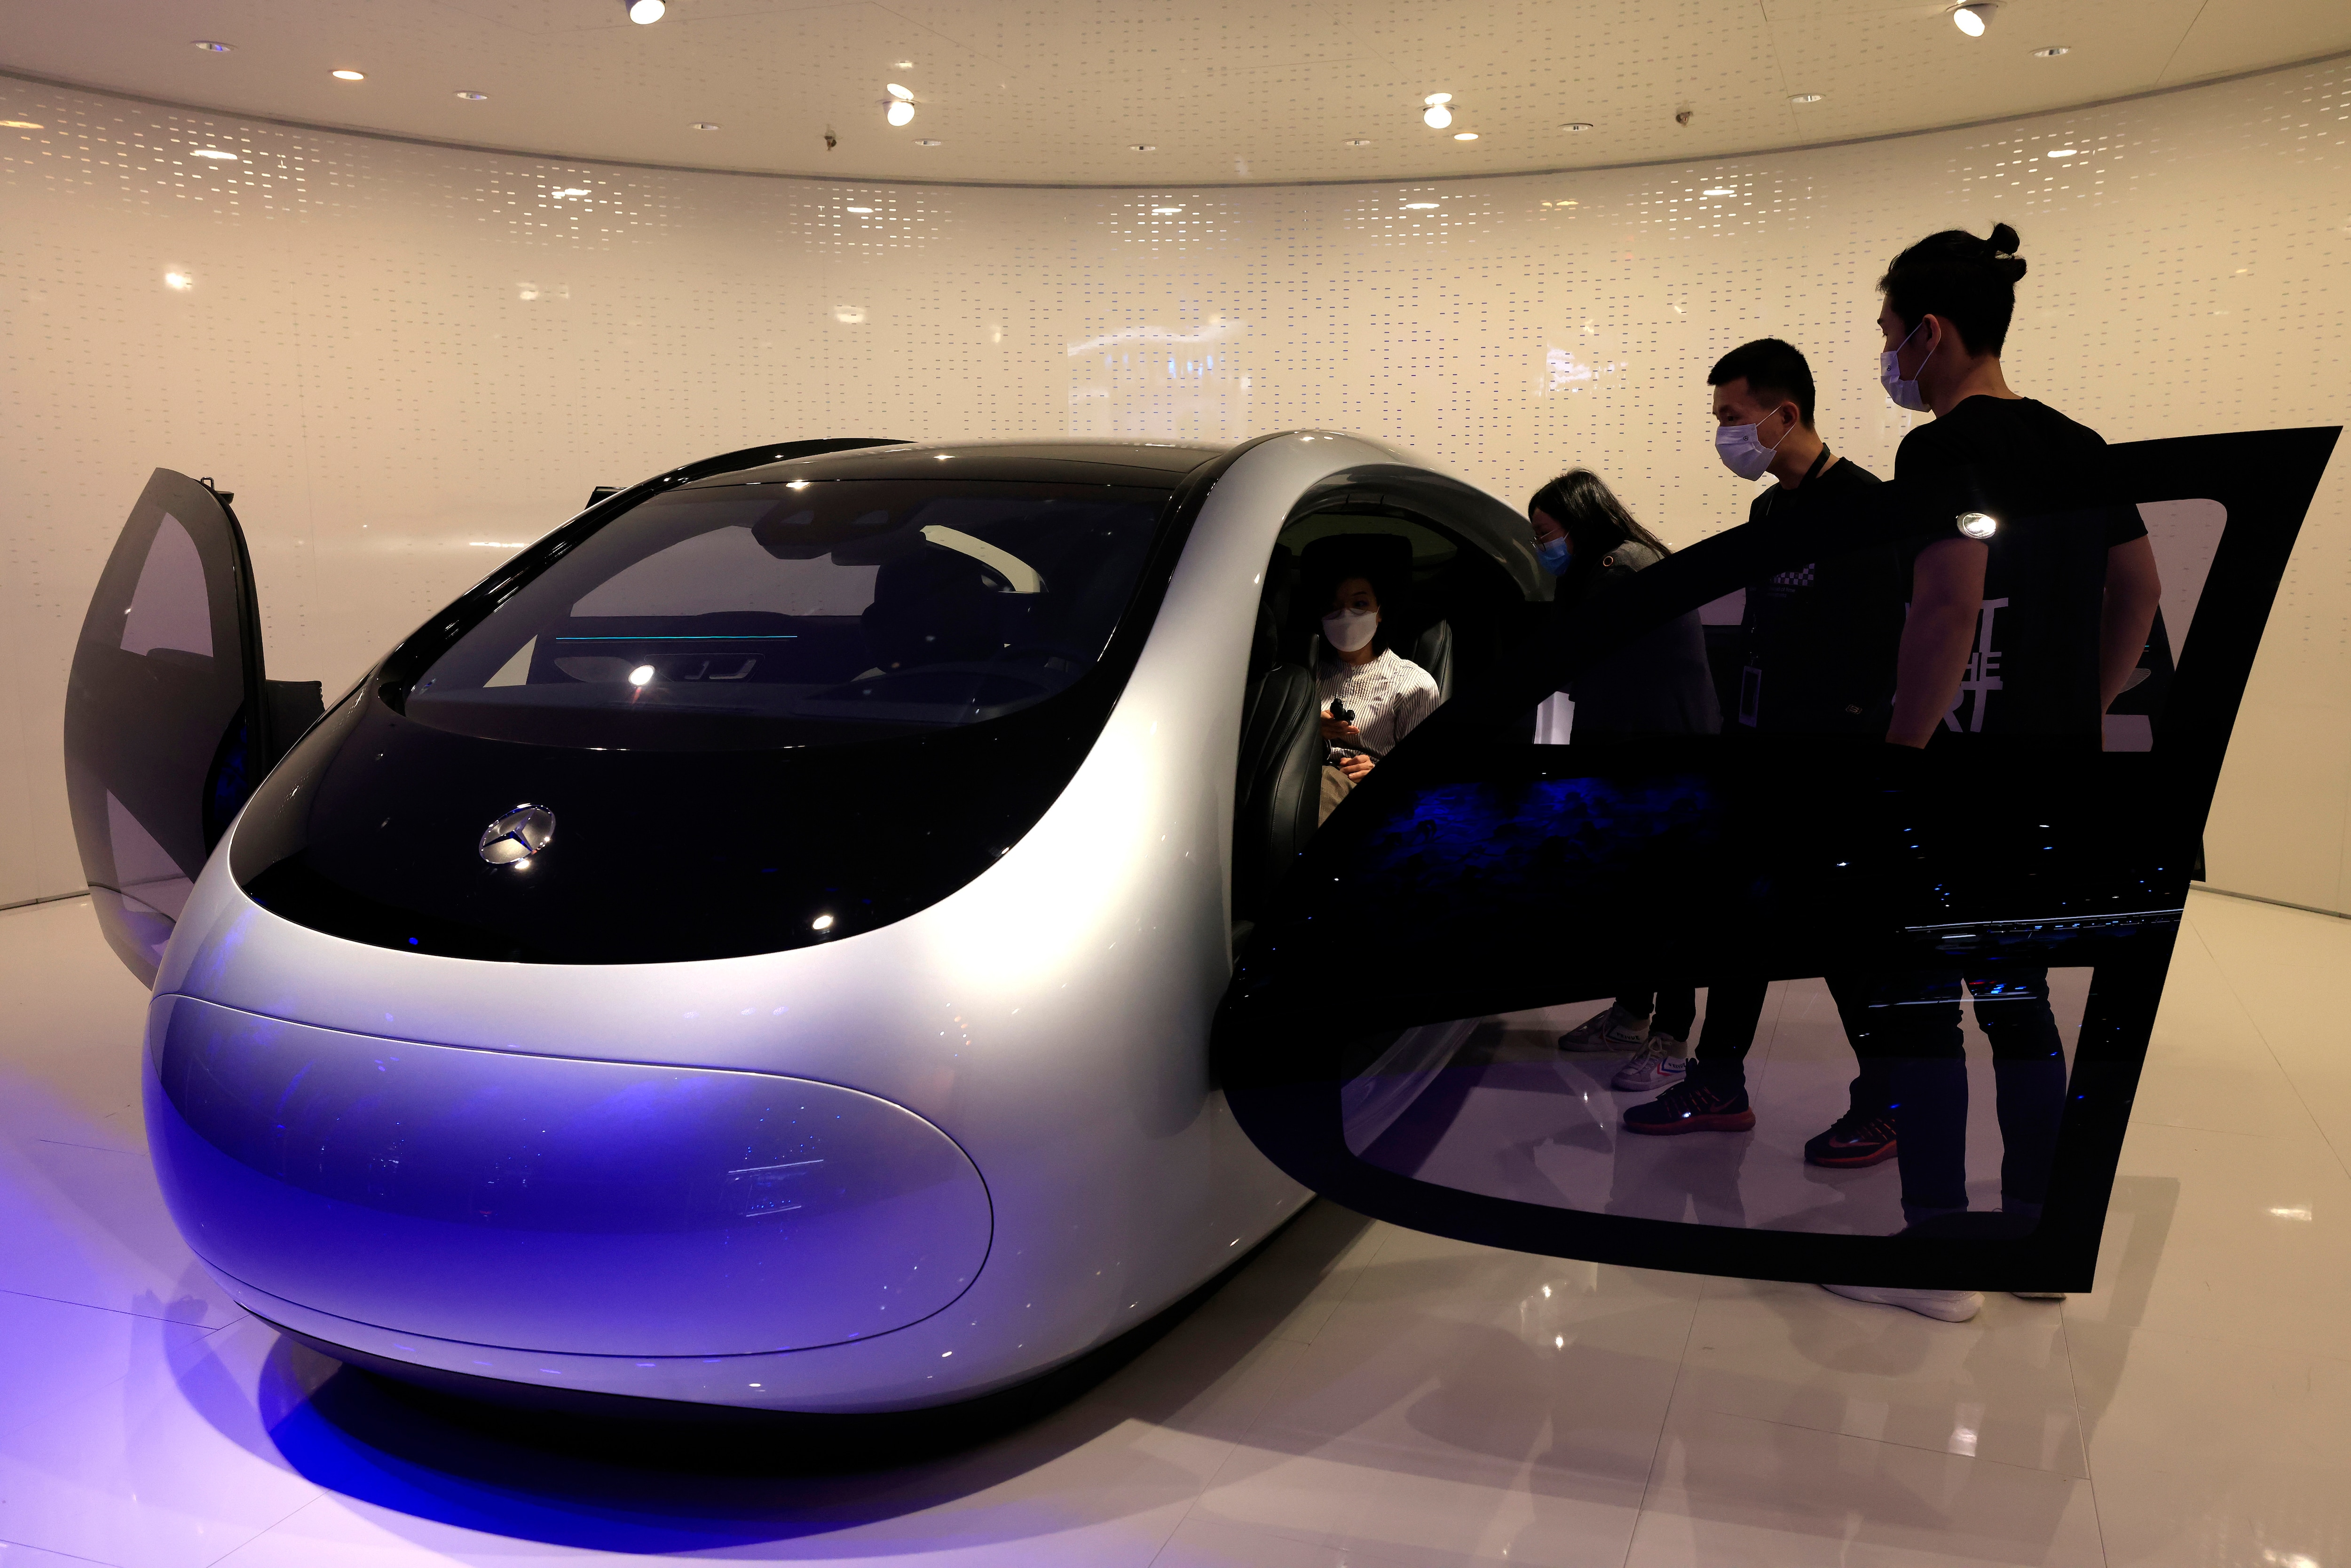 Visitors try out a concept vehicle at the Mercedes-Benz booth. While some steep inside the concept car to experience its ambience, some look at it from outside. (AP)